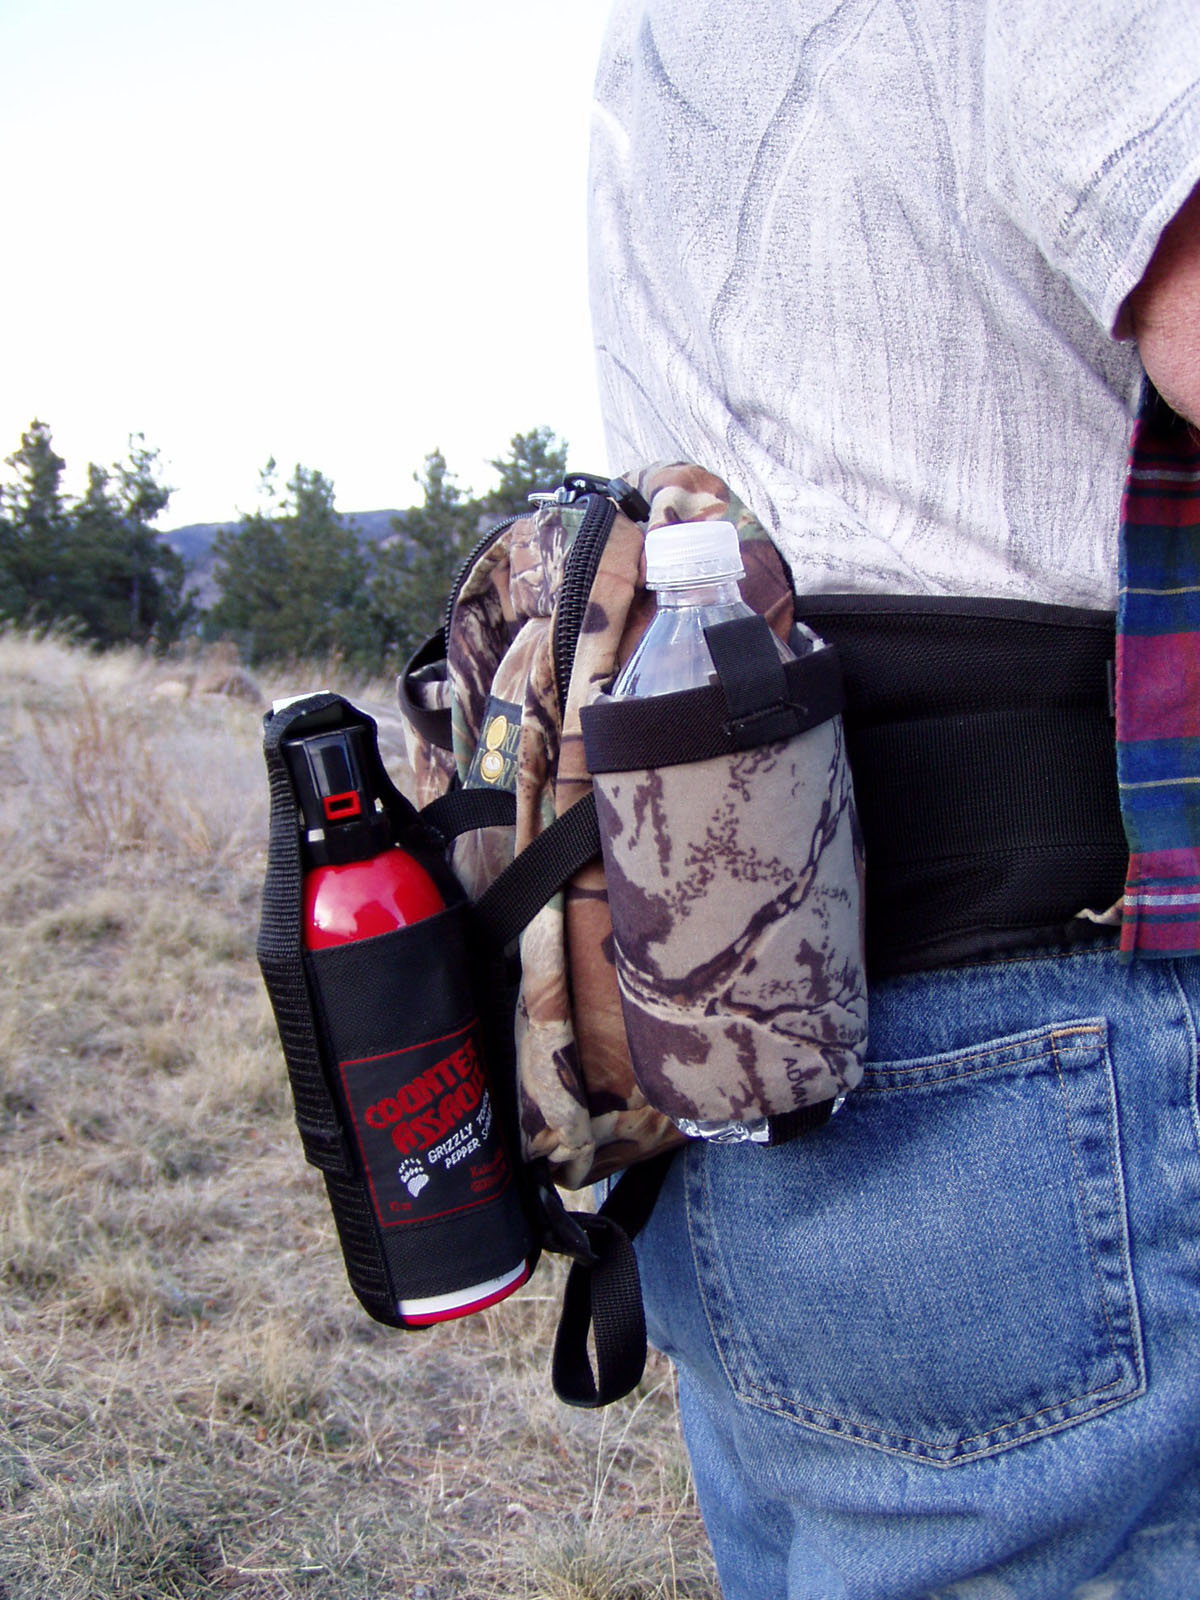 Bear Protection With Frontiersman Bear Spray: Bear Spray Is An Effective Deterrent. Learn How To Use It